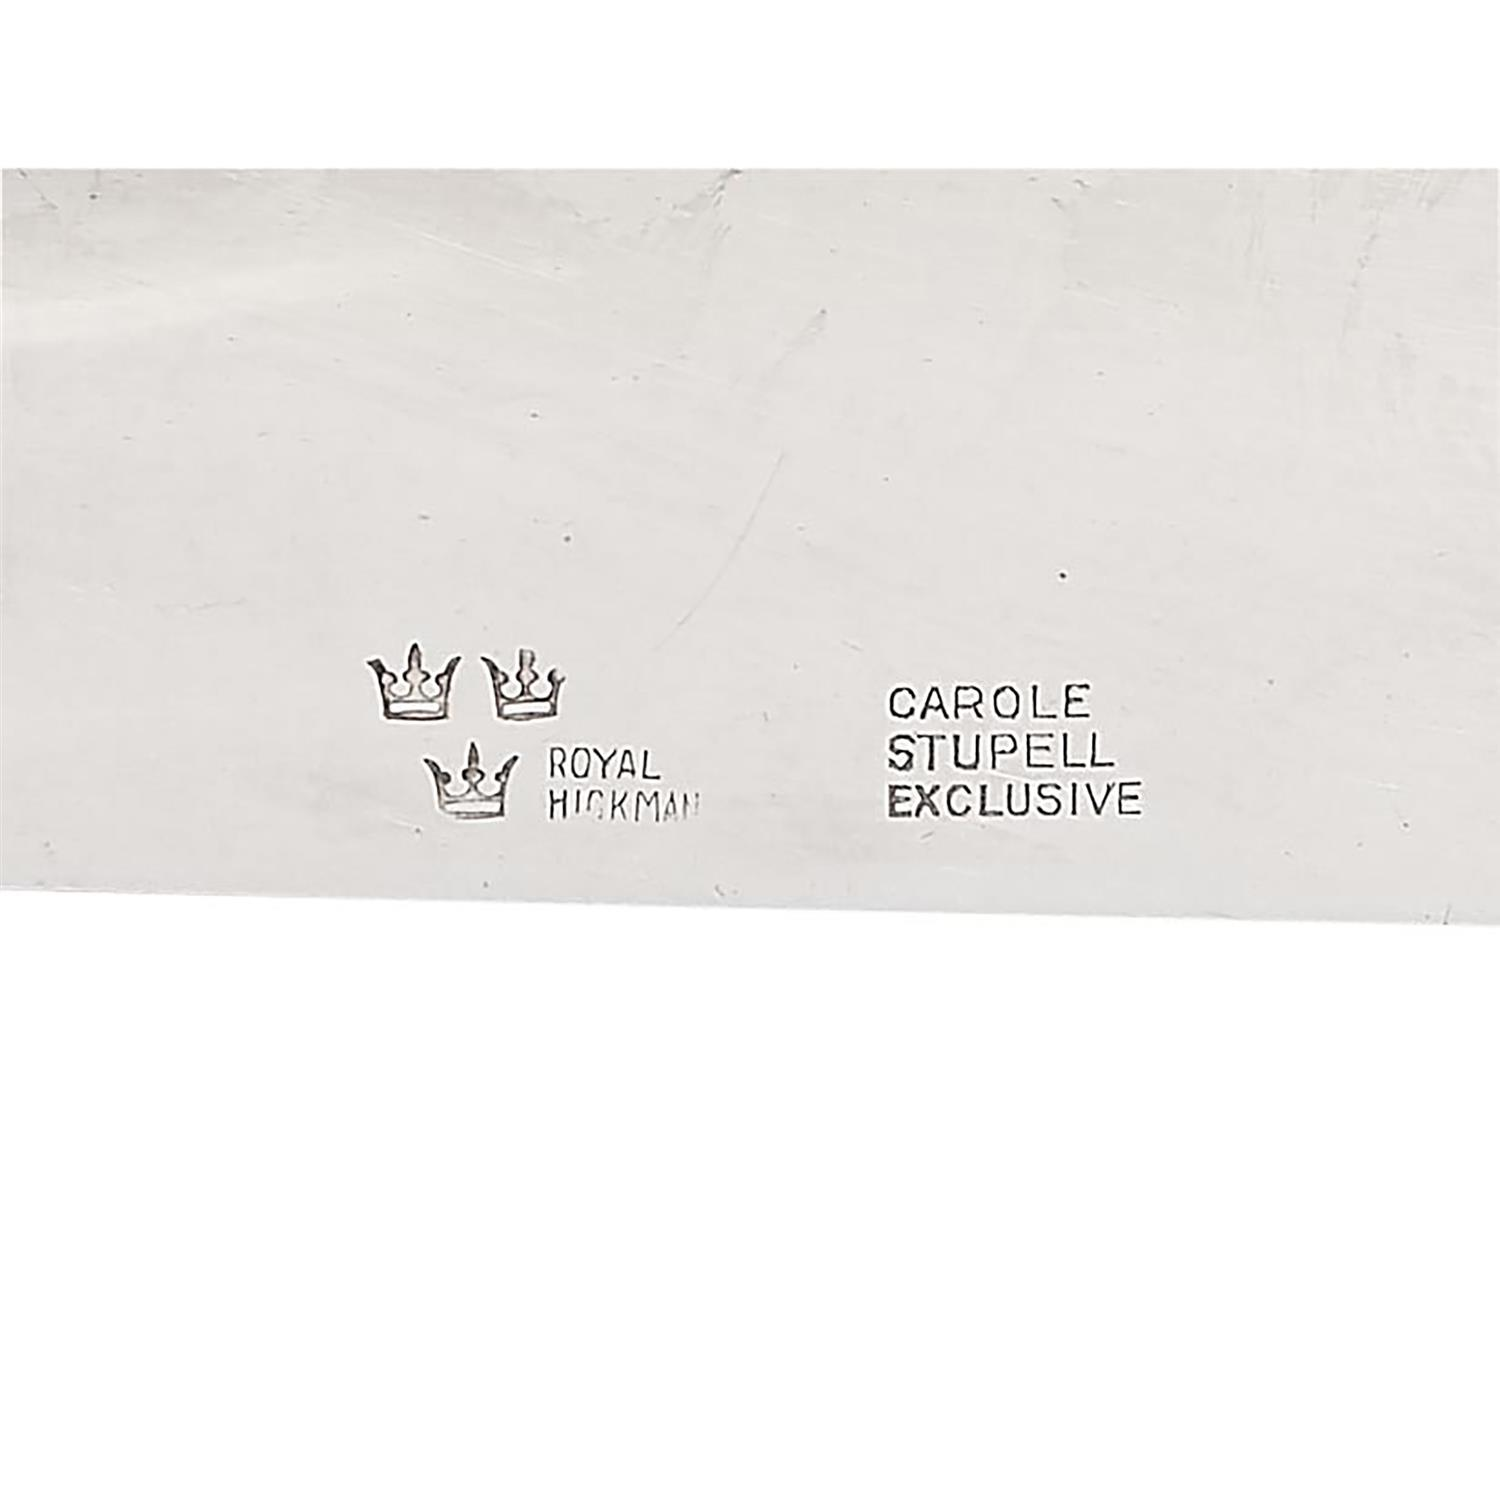 "Royal Hickman for Carole Stupell, Ltd. three-light candelabra, pair each: 12""w x 5""d x 7""h"